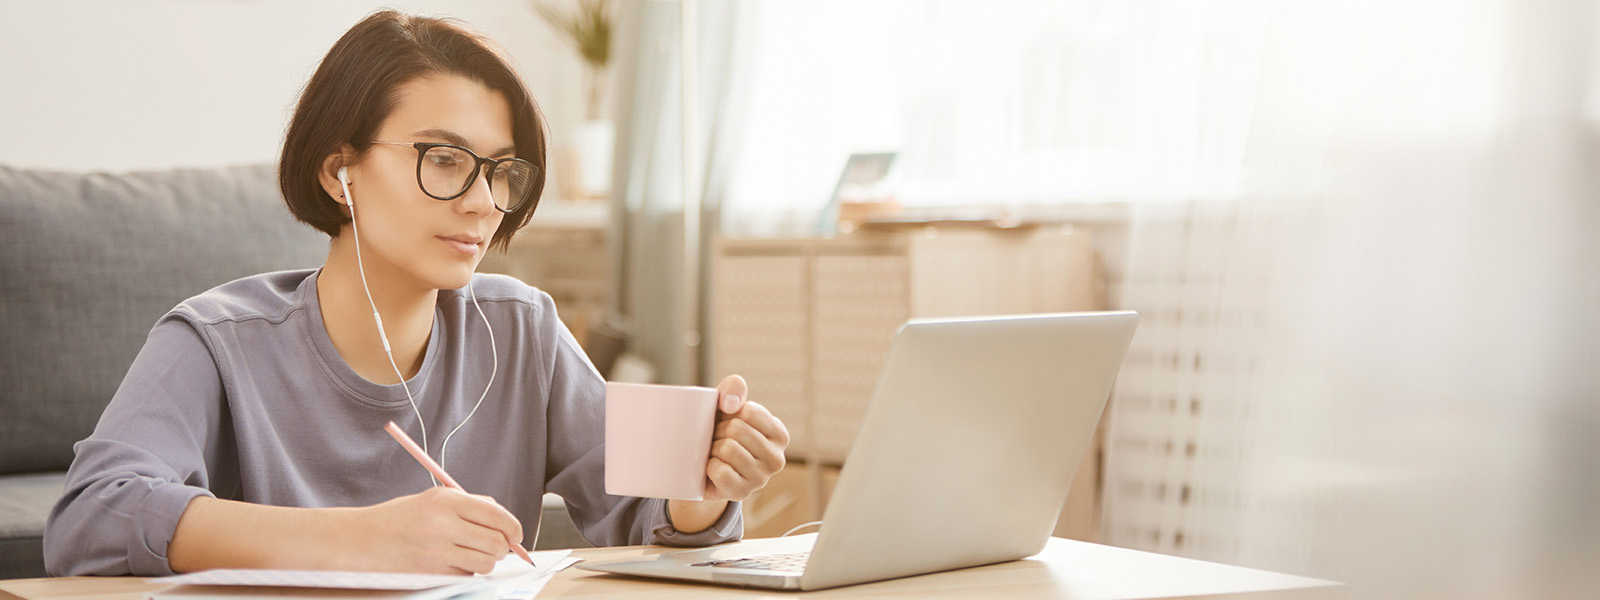 woman sitting on floor working on laptop with pen in right hand and mug in left hand